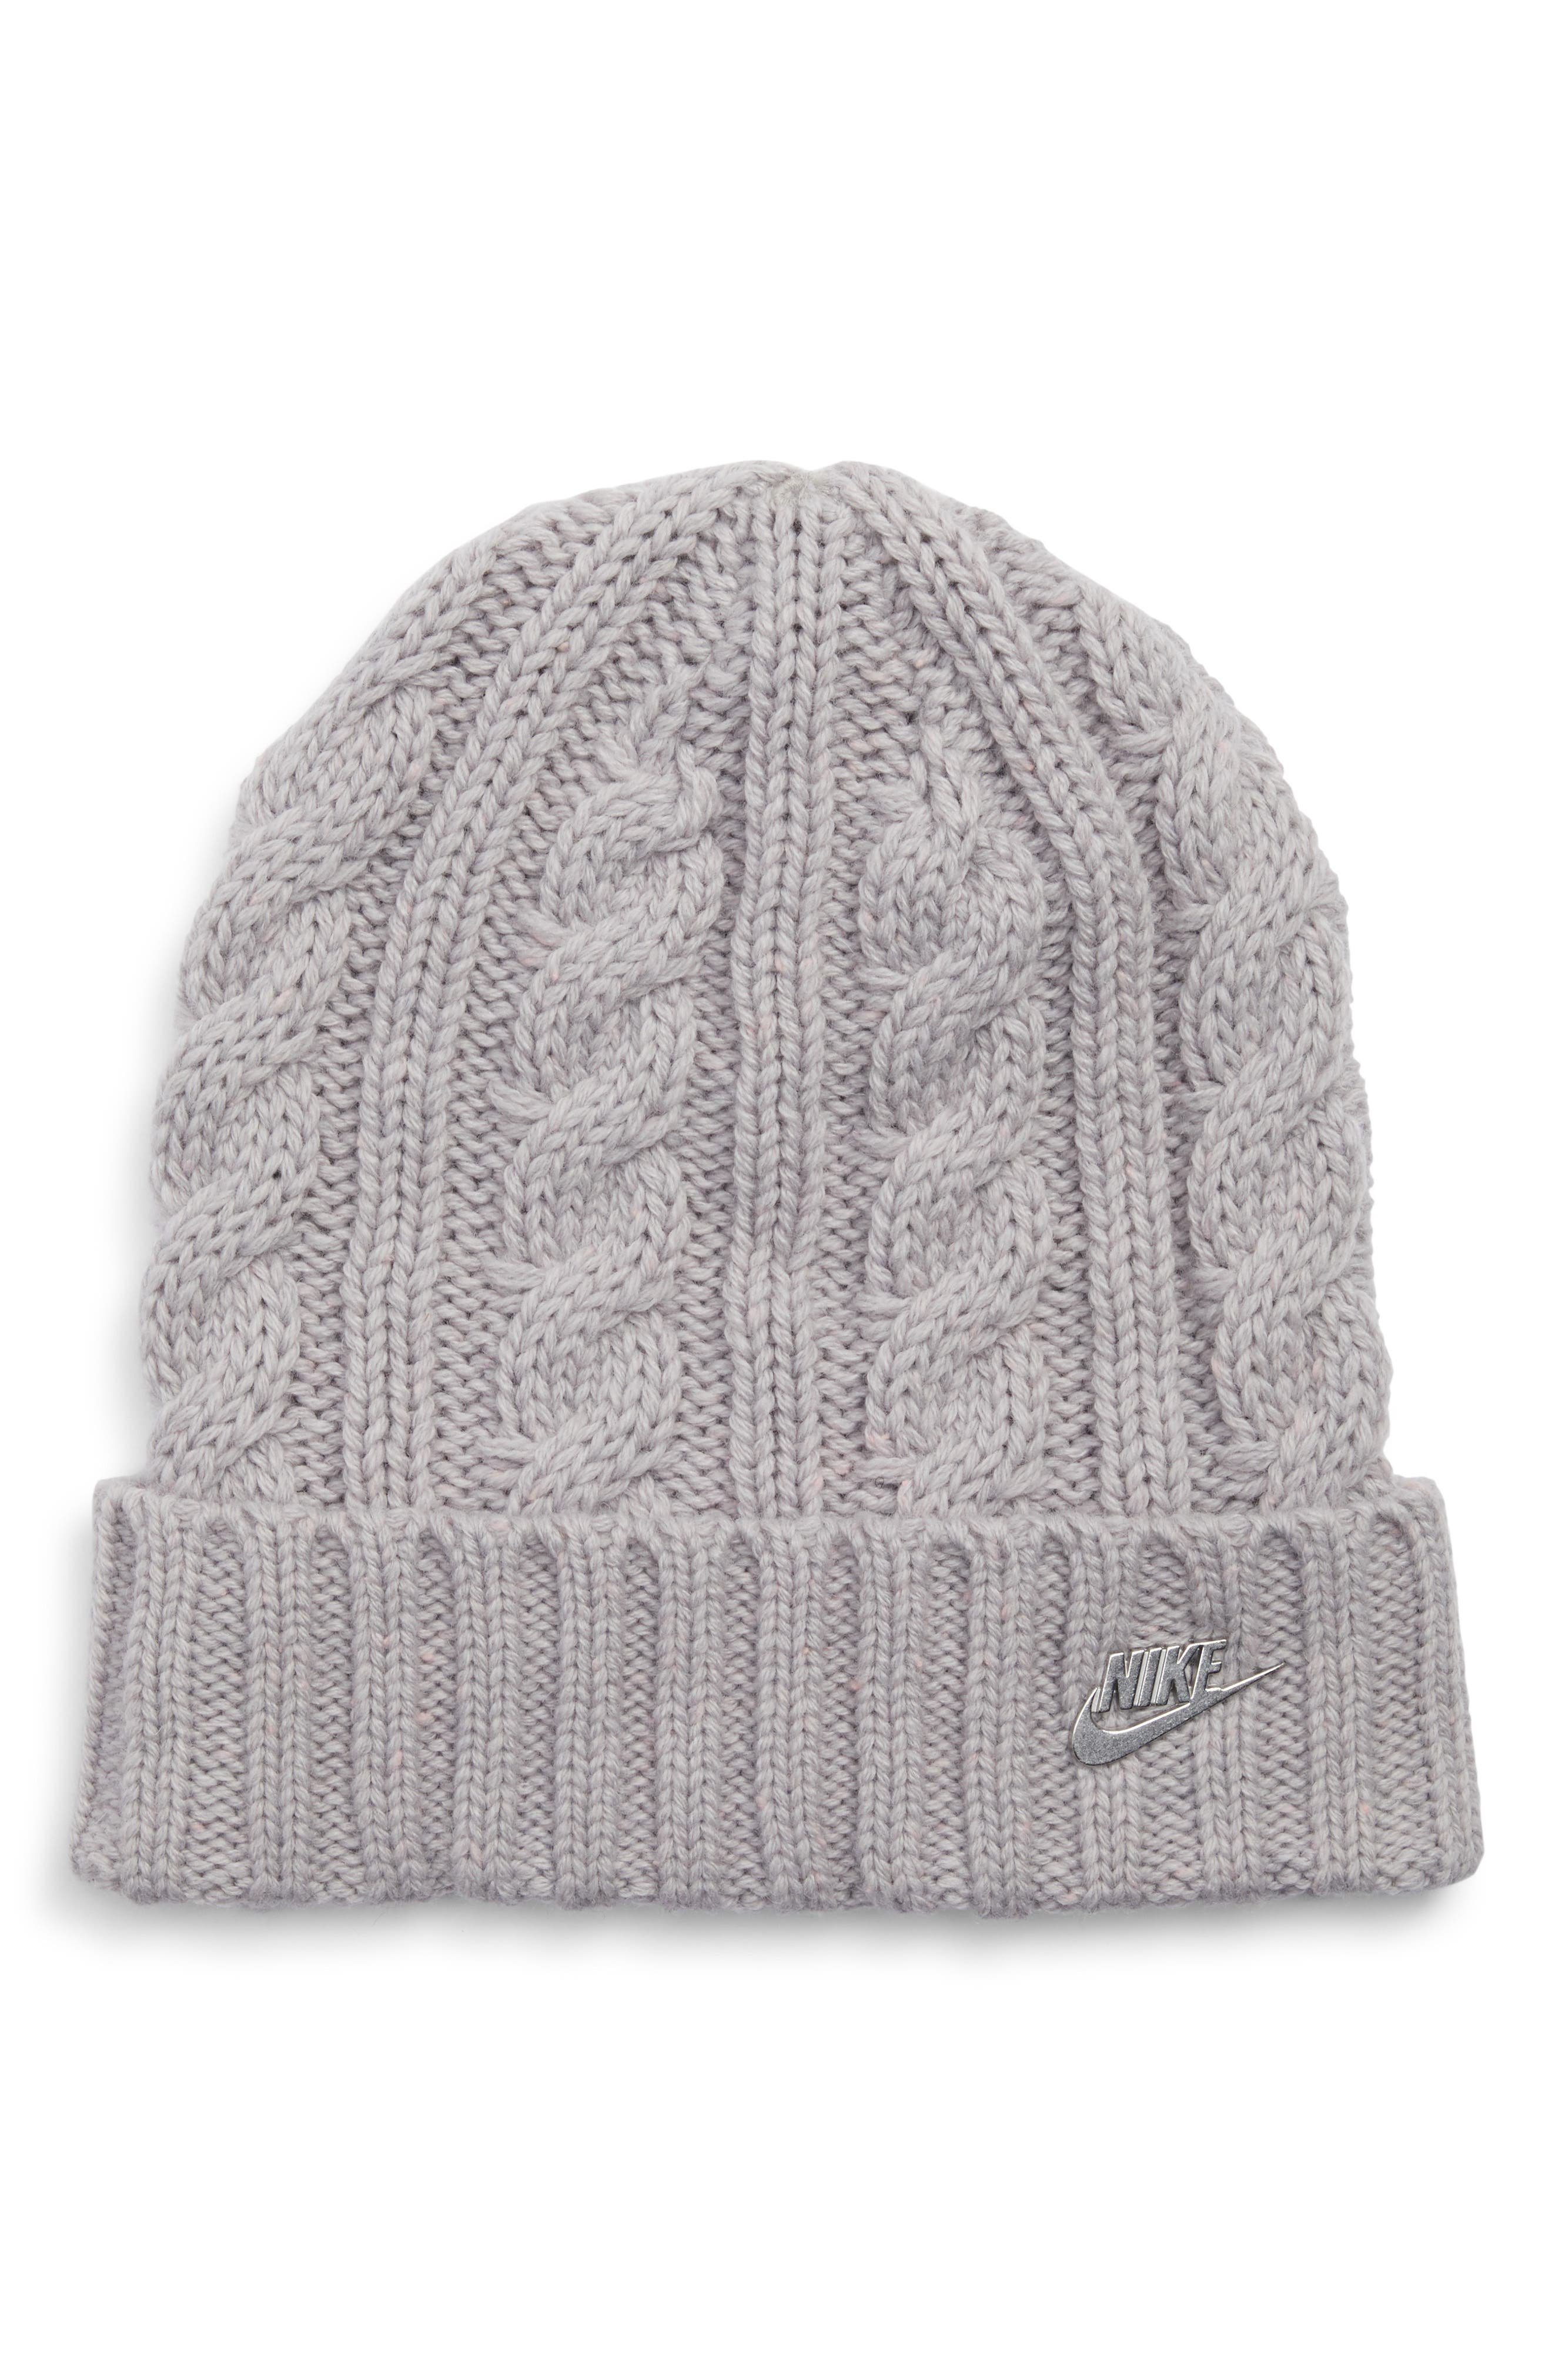 Sportswear Beanie with Removable Pom,                             Alternate thumbnail 2, color,                             027